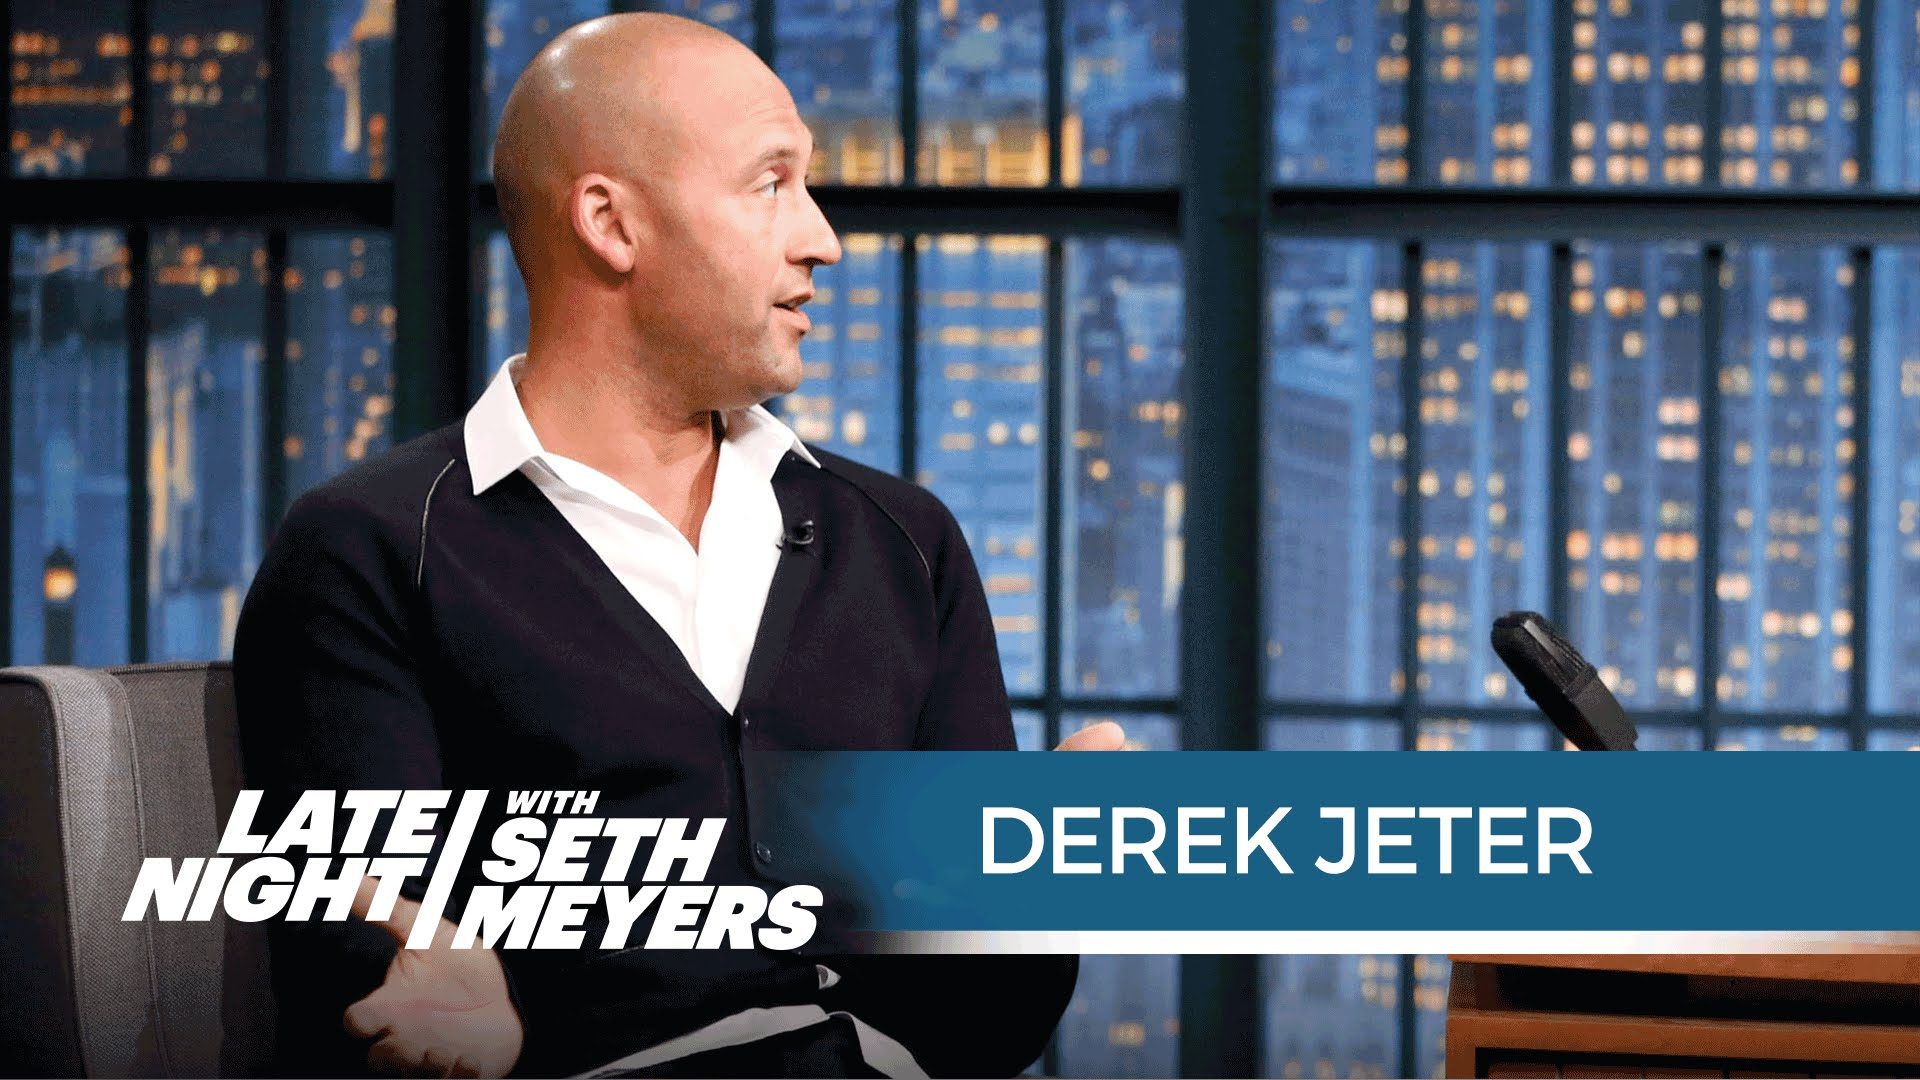 Derek Jeter says Boston Red Sox fans have gone soft